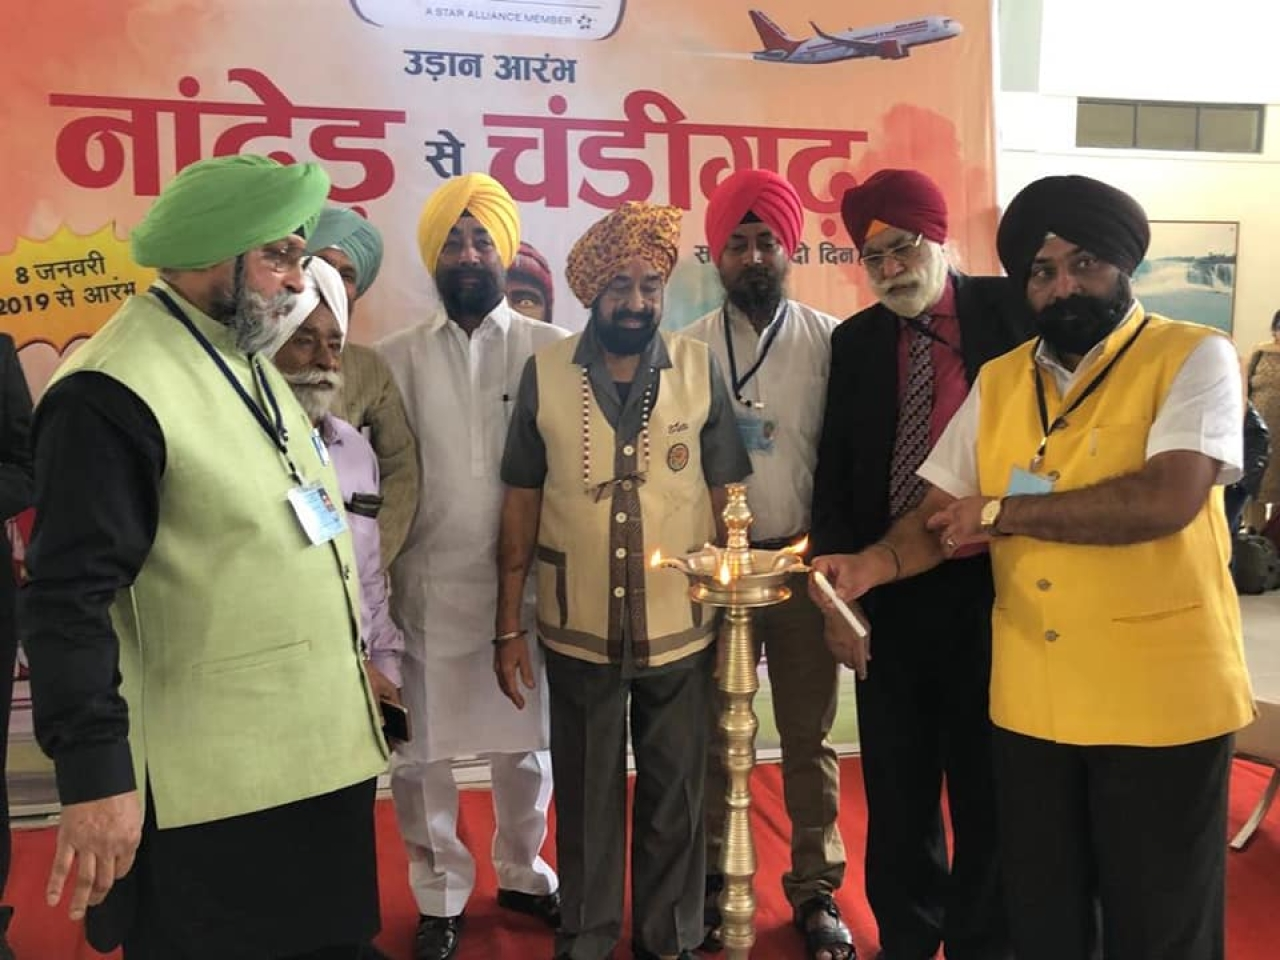 First Direct Flight From Chandigarh To Nanded Sees Sikh Pilgrims Doing 'Shadab Kirtan' And 'Ardaas'